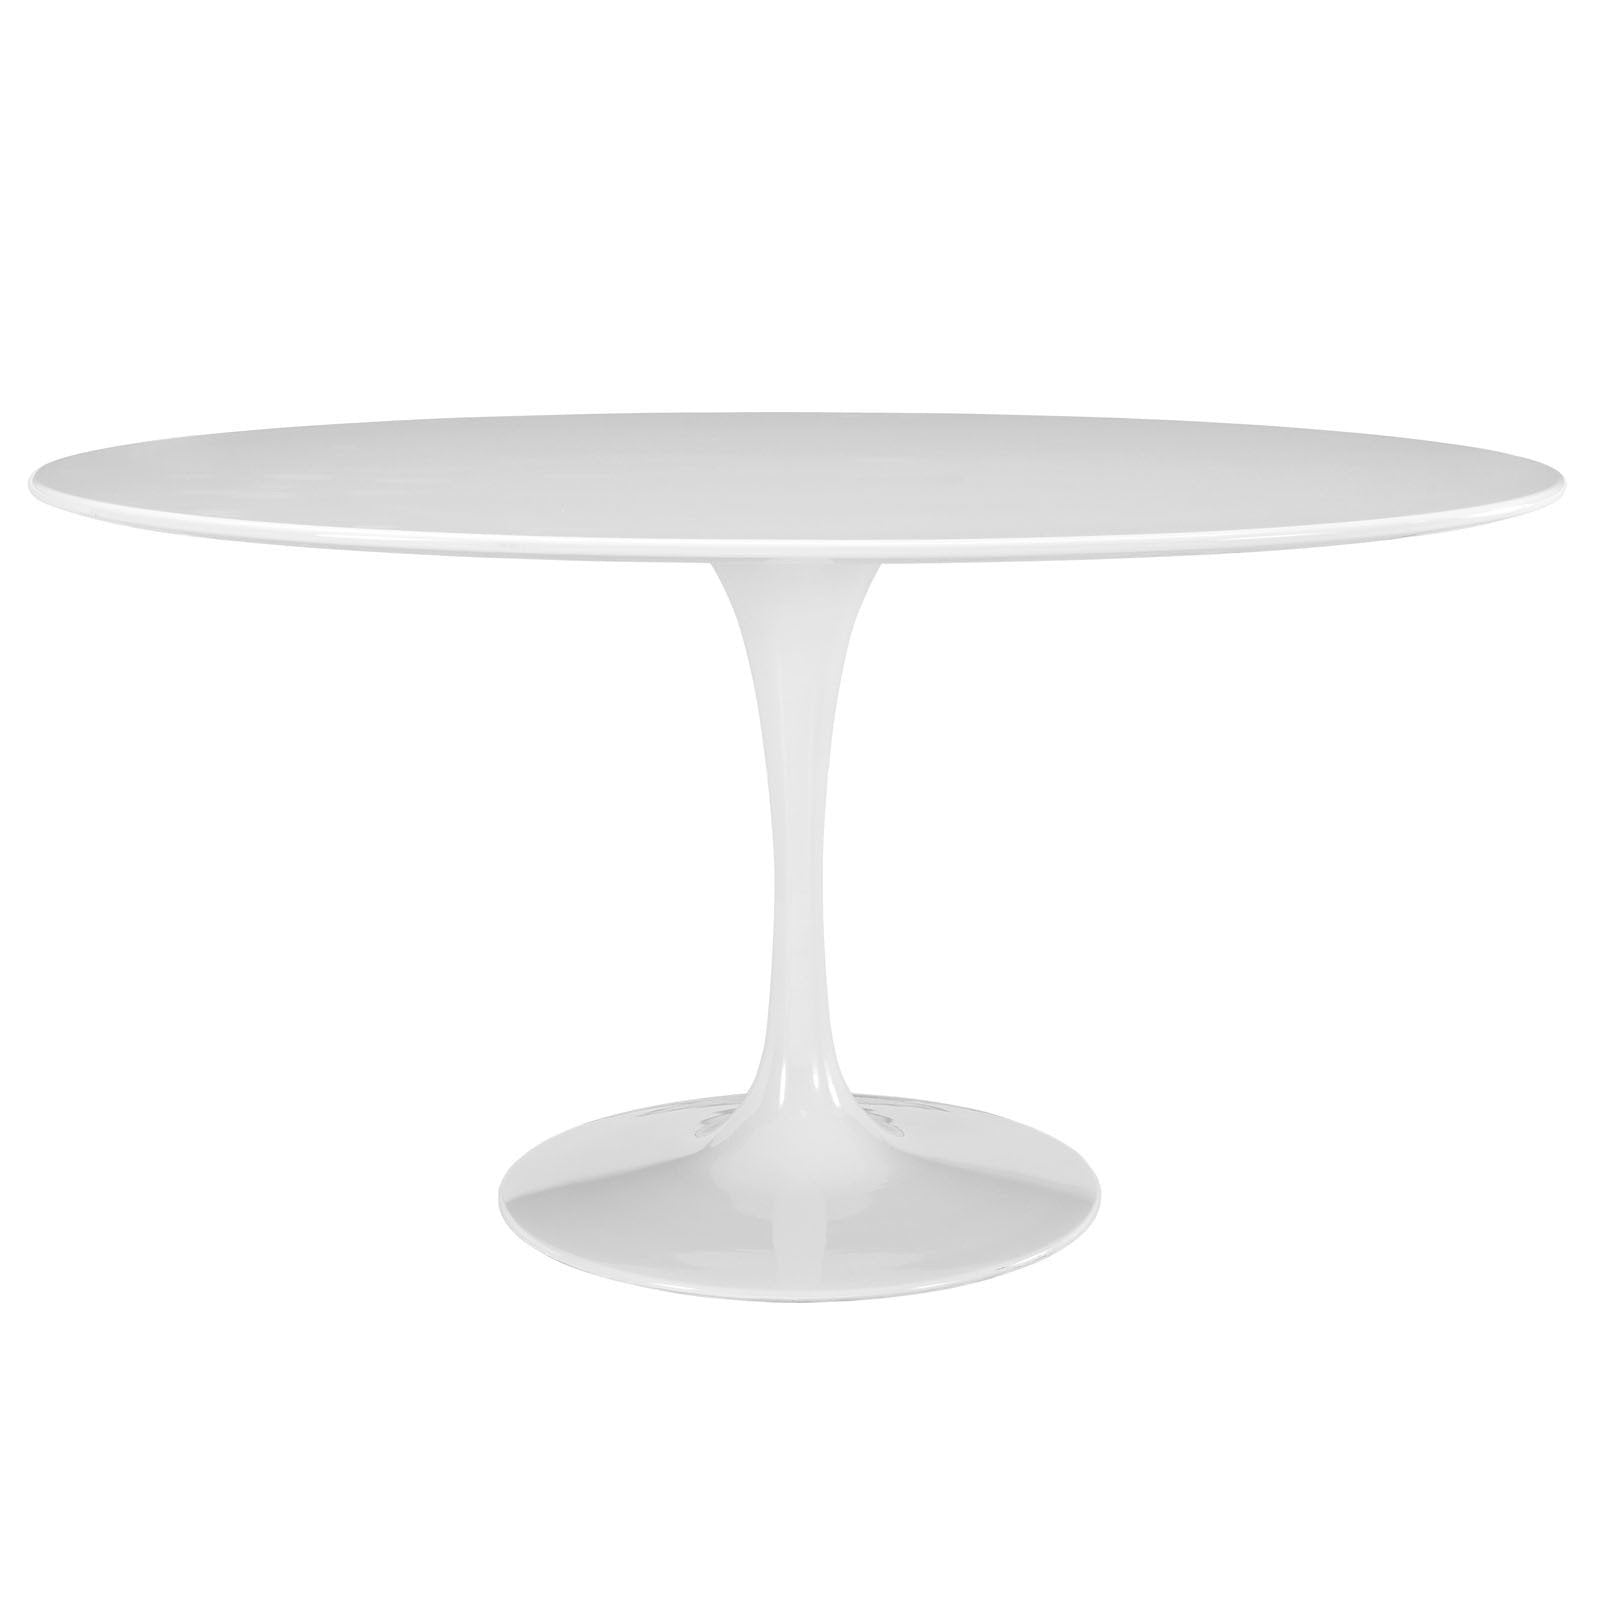 "Tulip Style 60"" Oval Dining Table EMFURN"